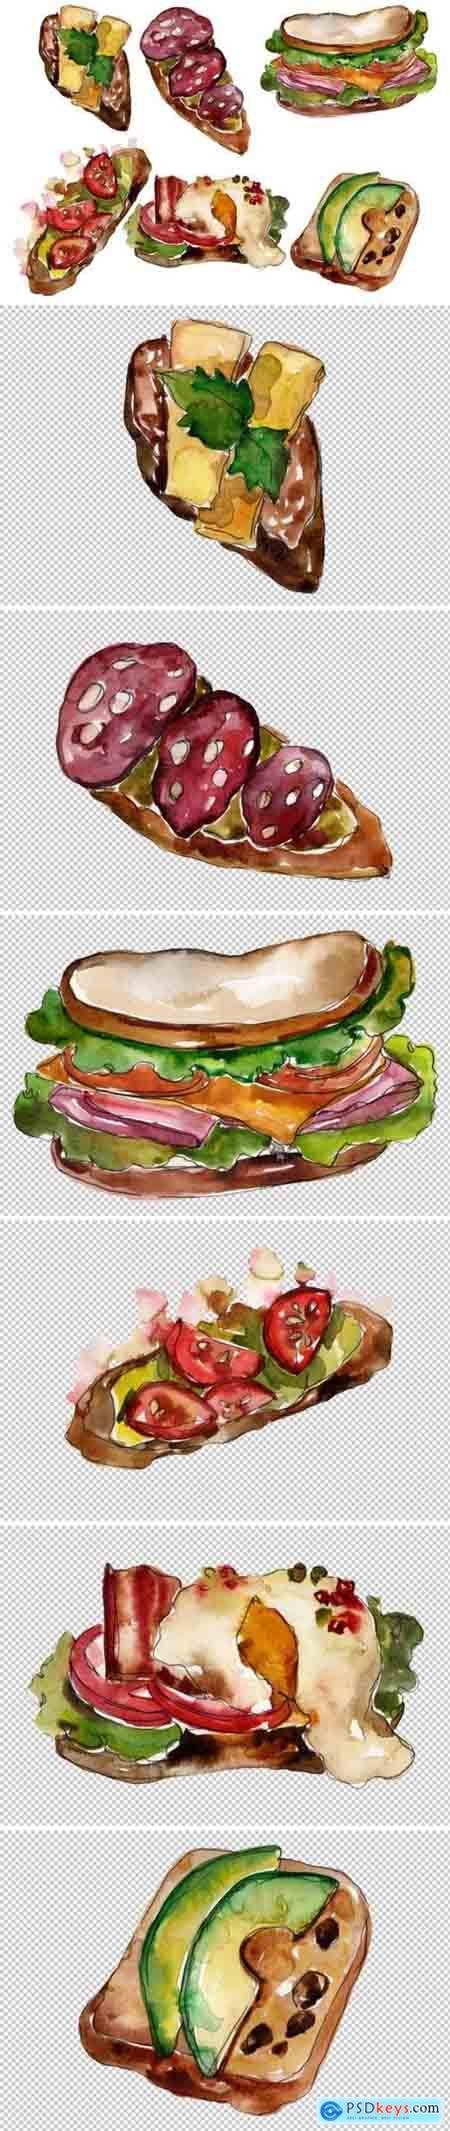 Sandwich sausage Watercolor png